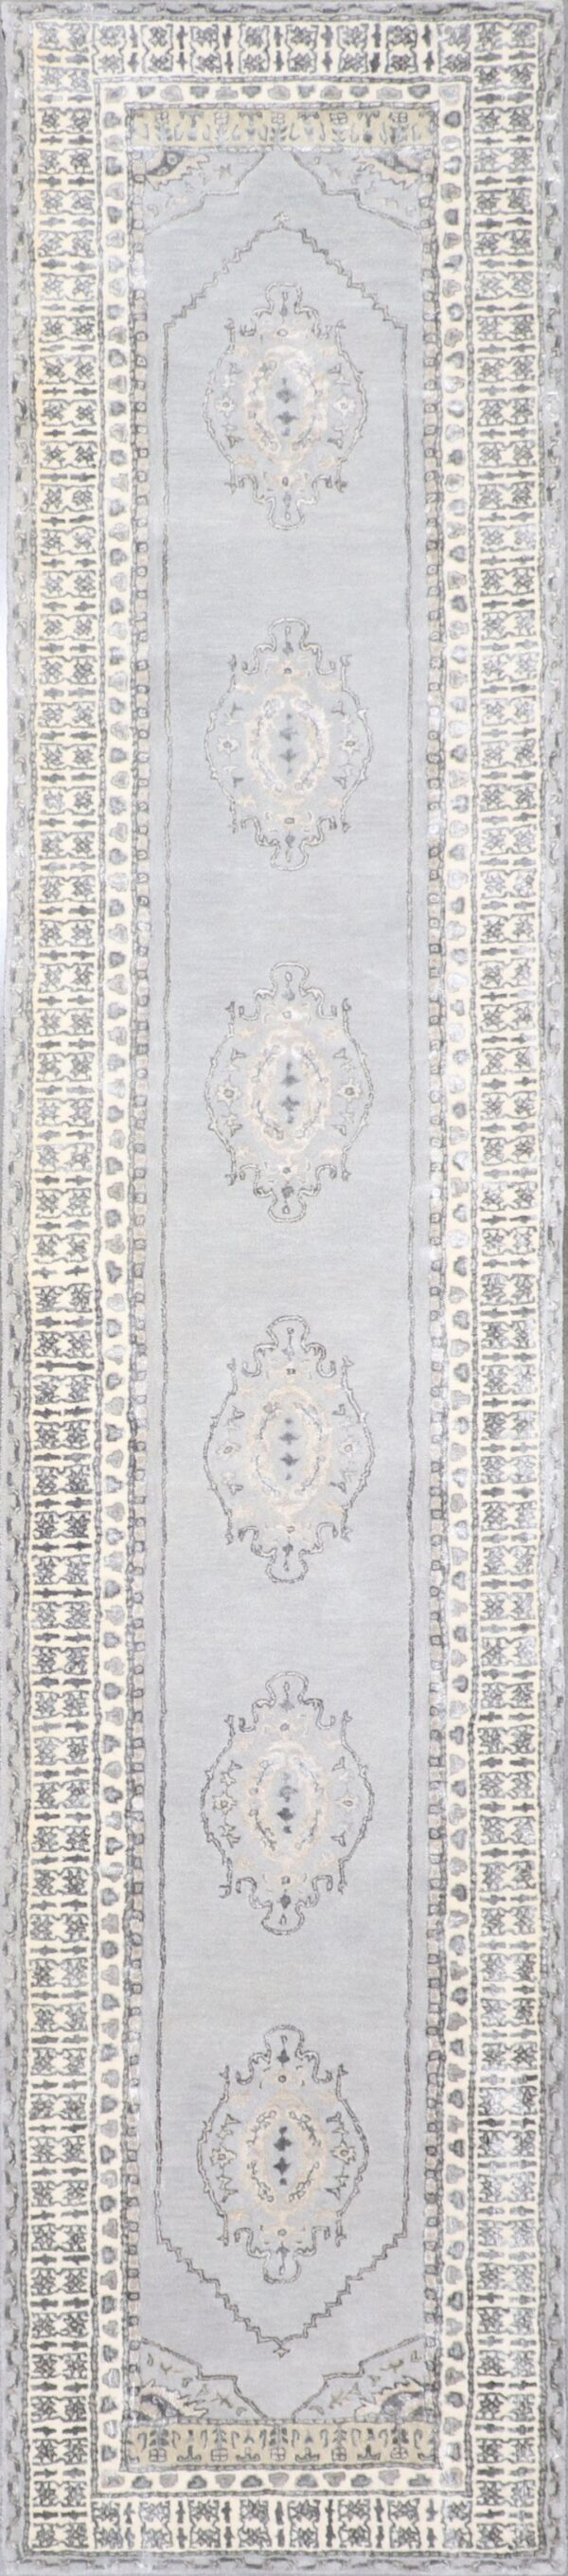 """2'9""""x12' Decorative Vintage Wool & Silk Hand-Tufted Rug - Direct Rug Import 